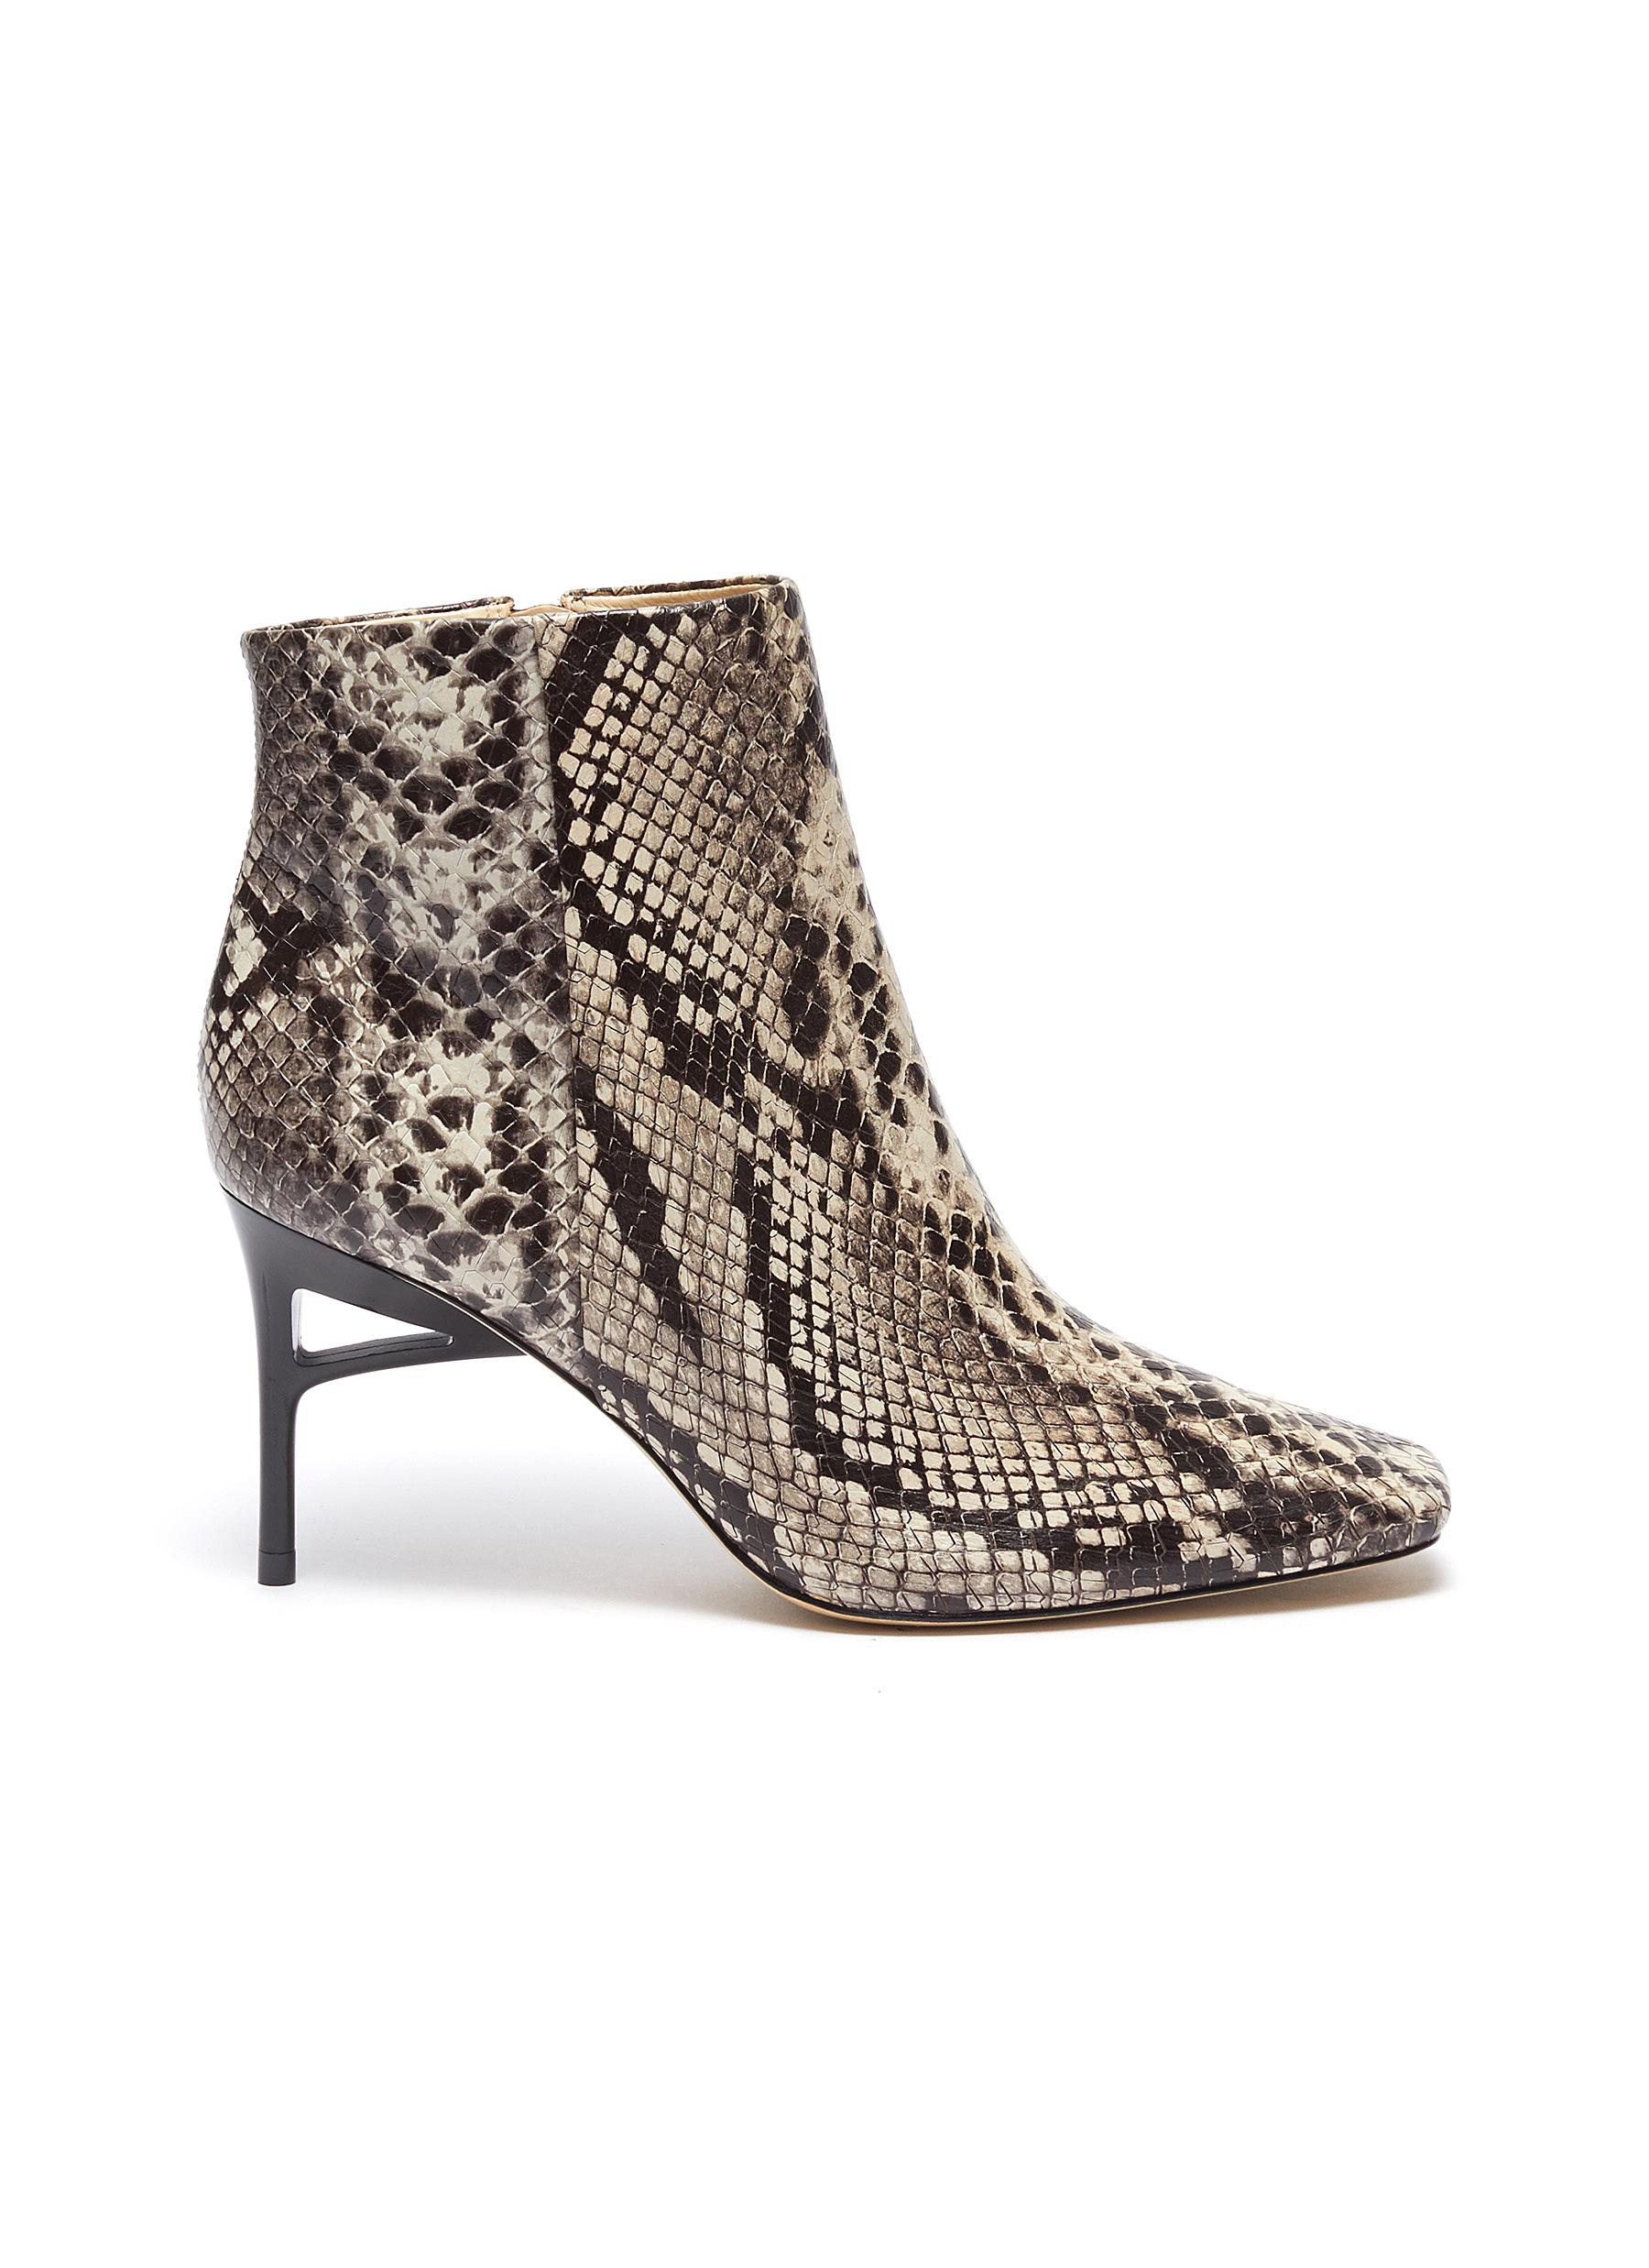 shop Cult Gaia 'Arezoo' snake embossed leather boots online